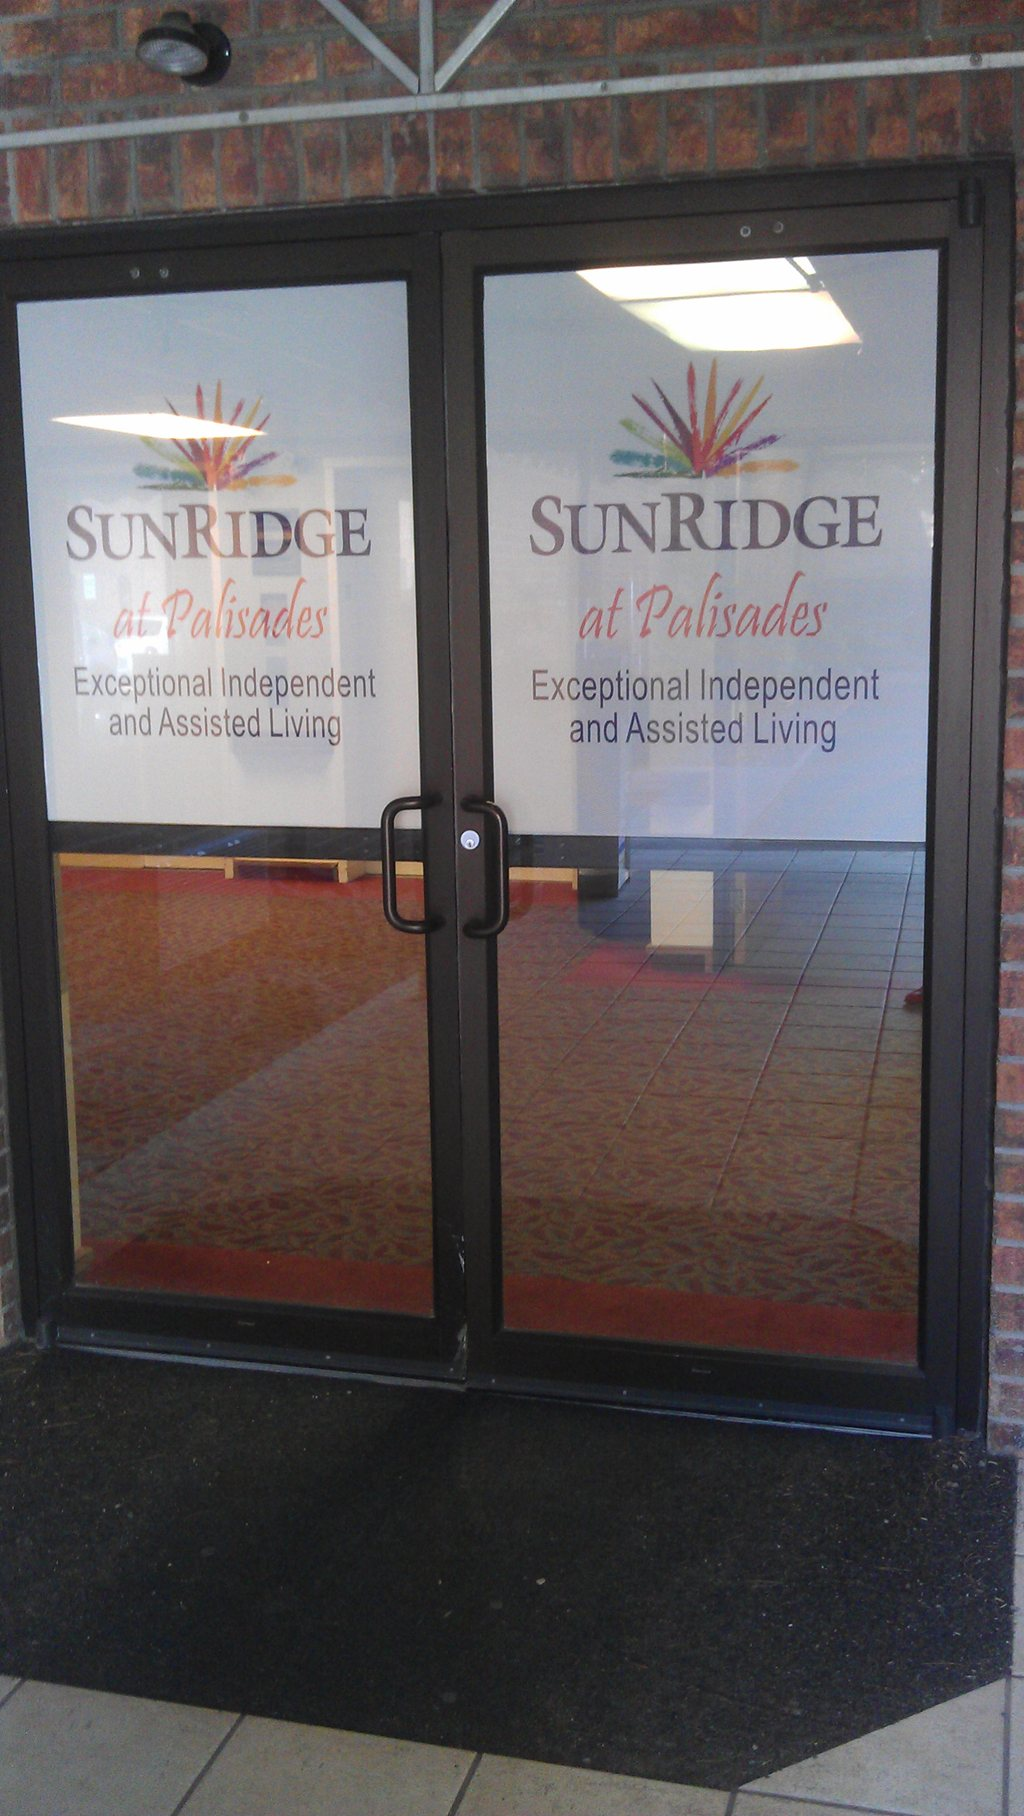 Sunridge at Palisades